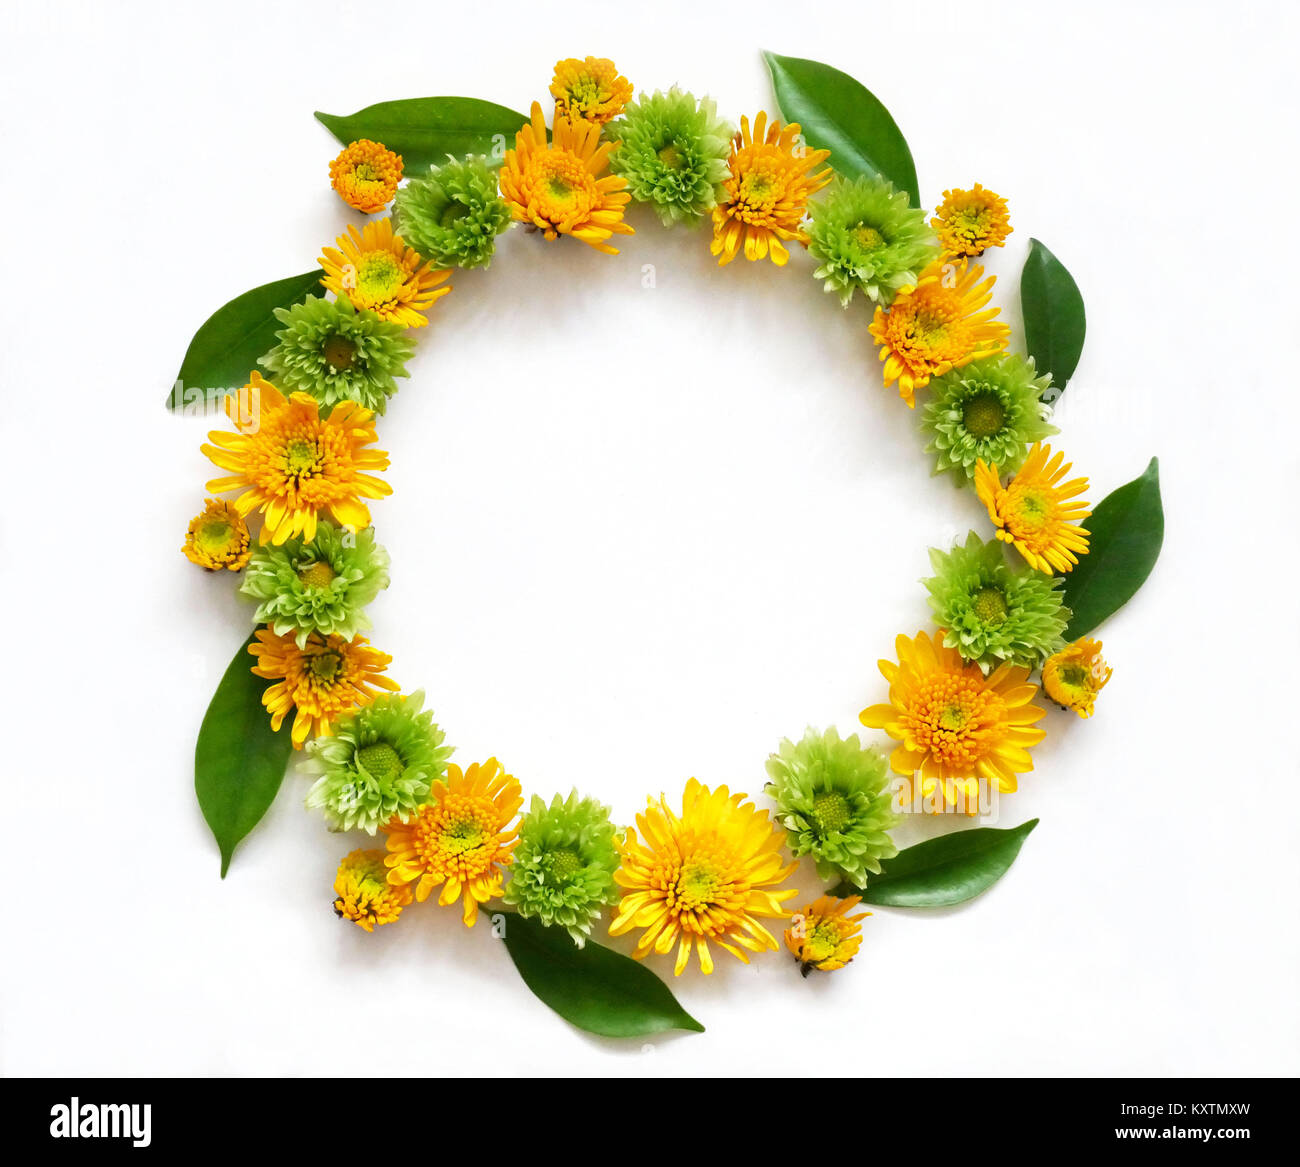 Flower Composition Round Frame Wreath Made Of Various Yellow And